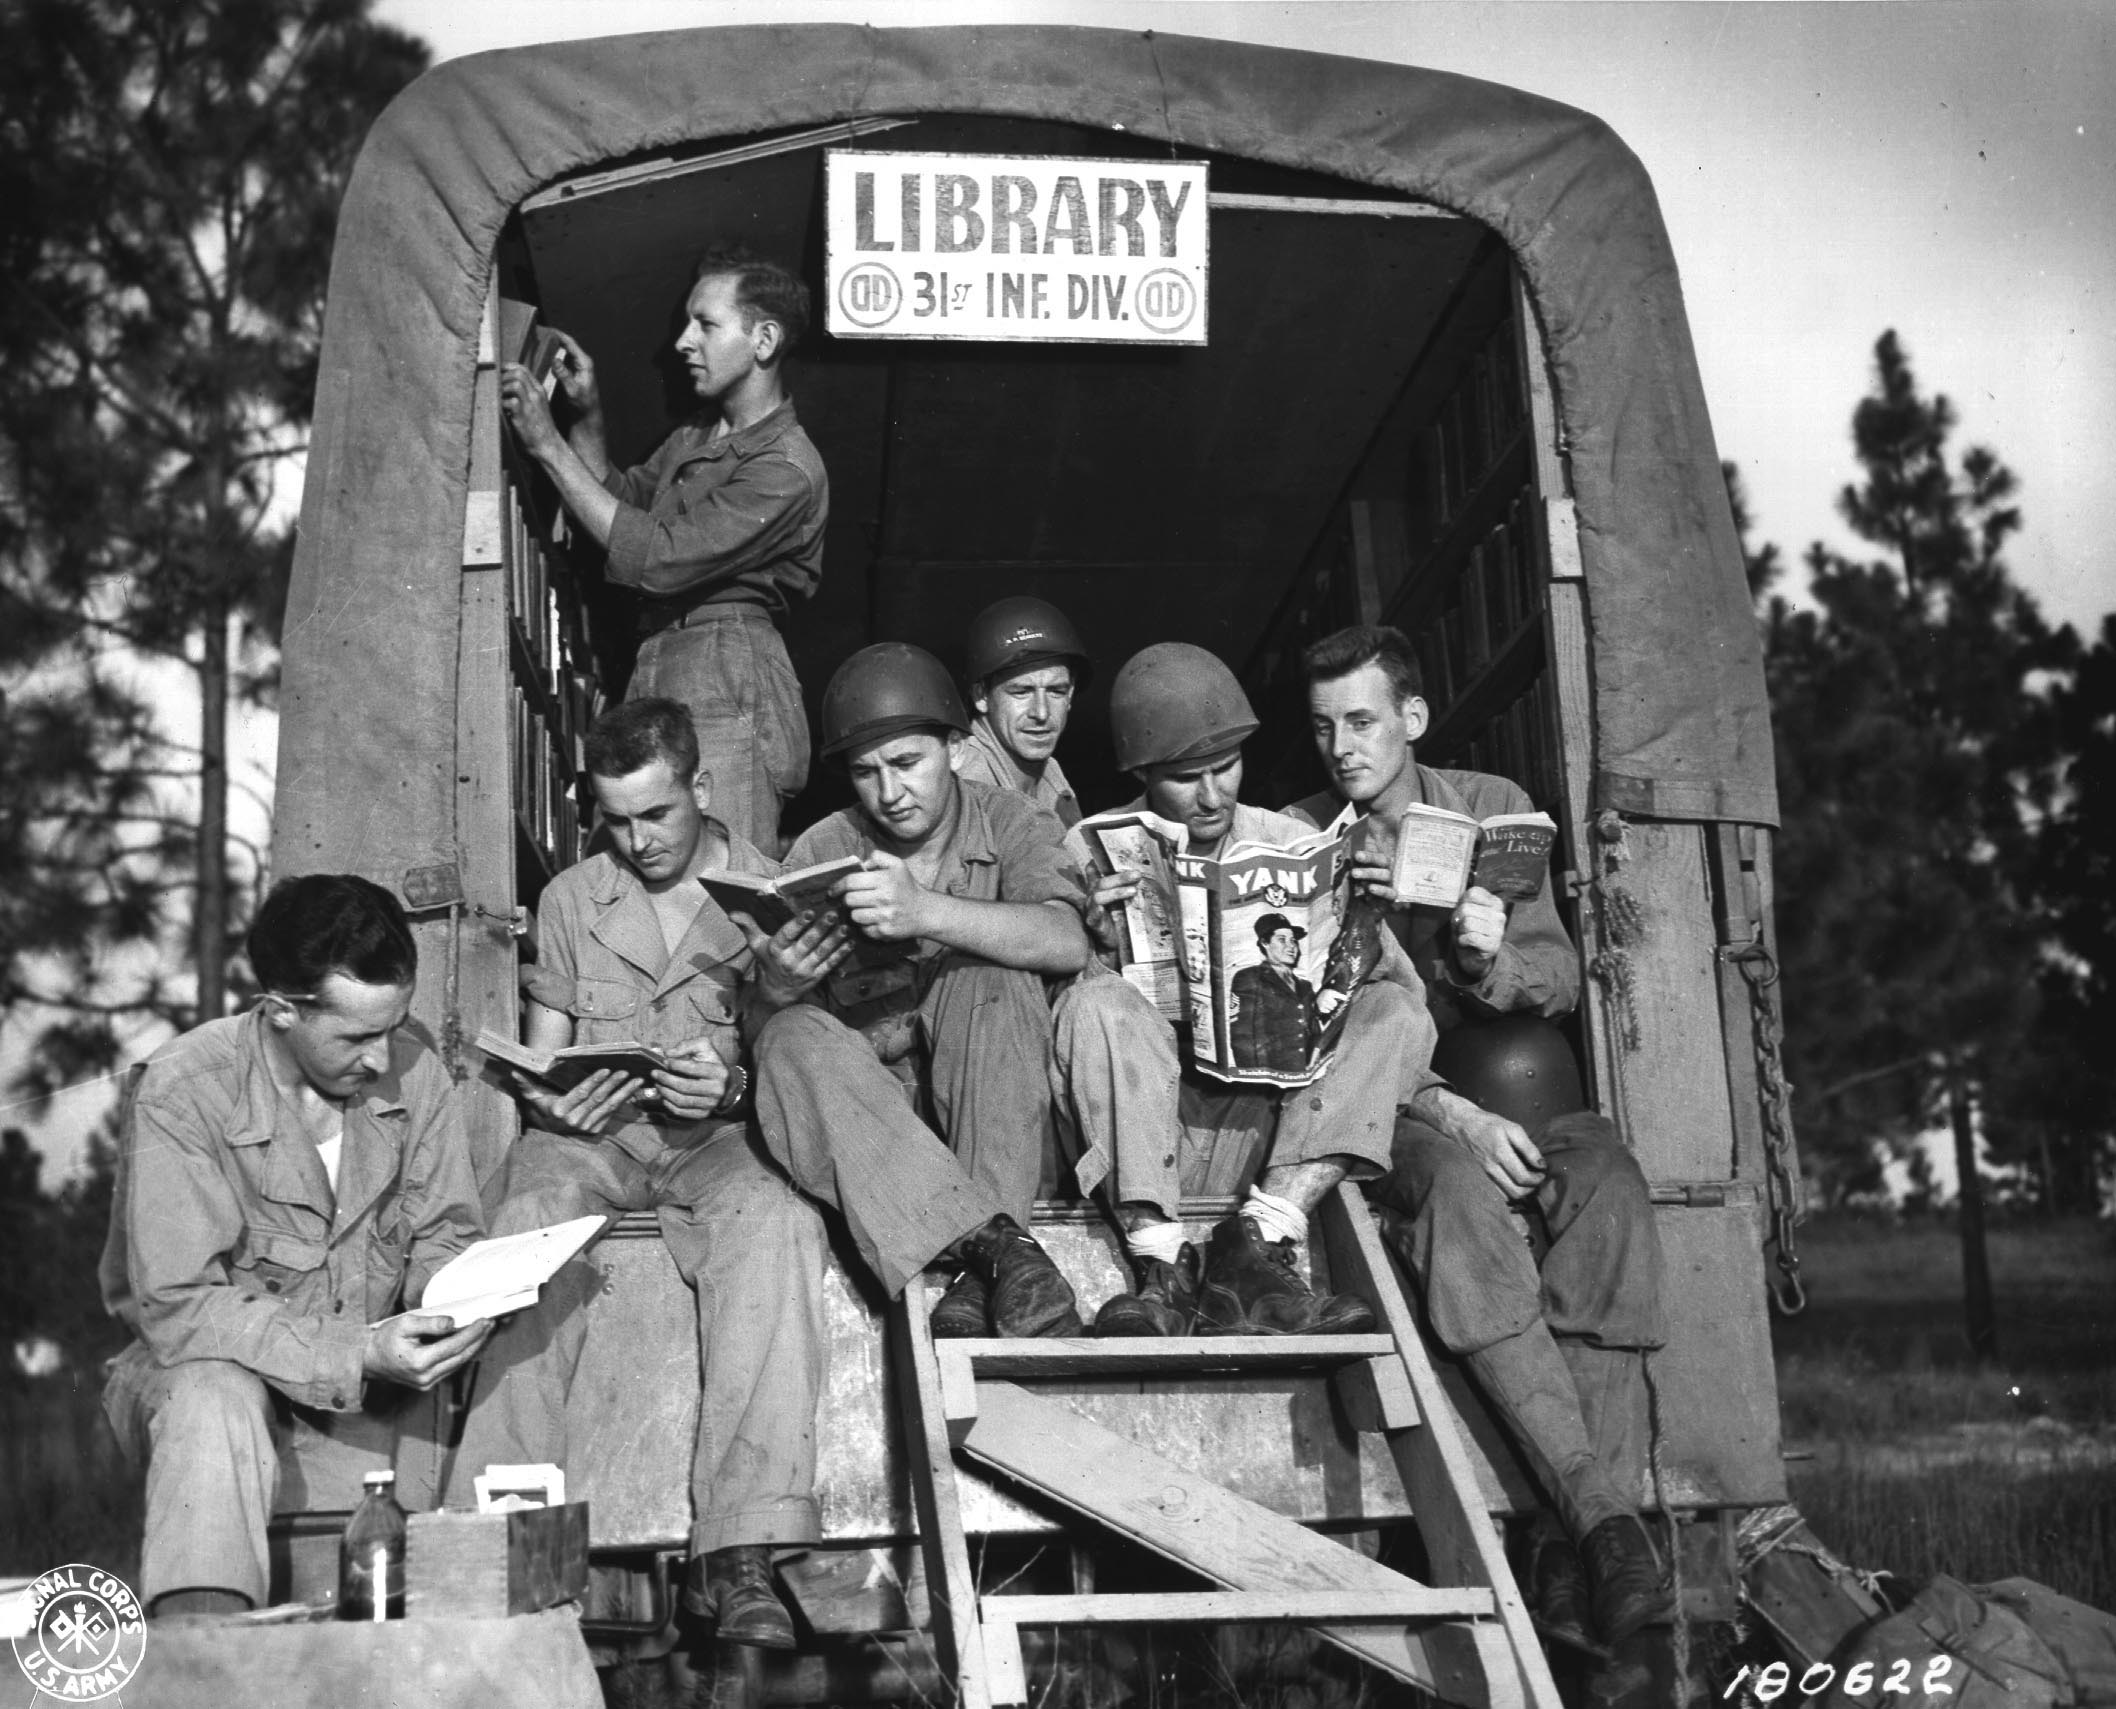 Library 31 Infantry Division